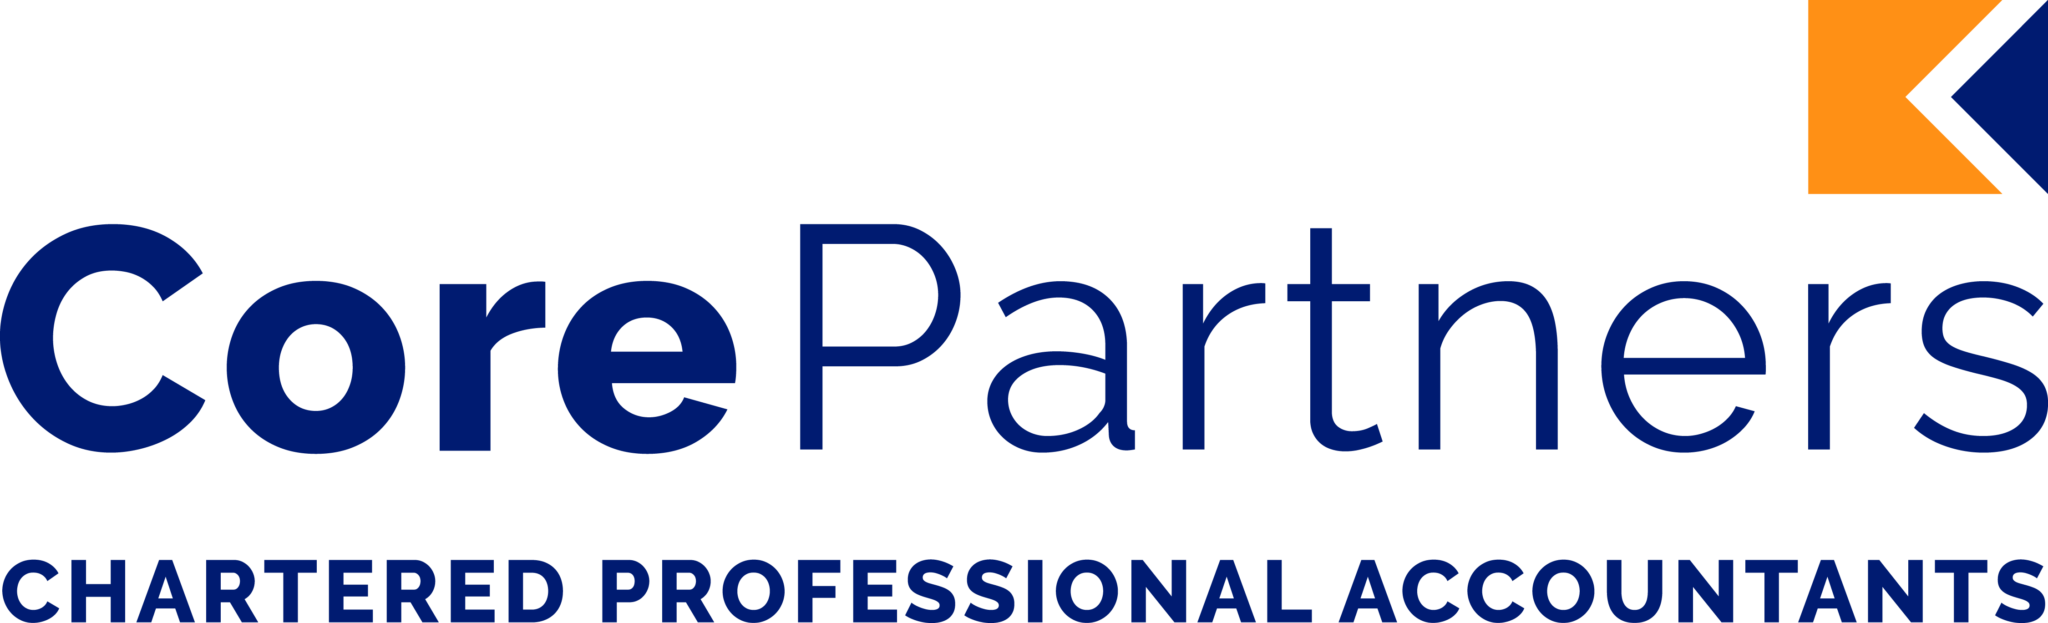 Core Partners Chartered Professional Accountants